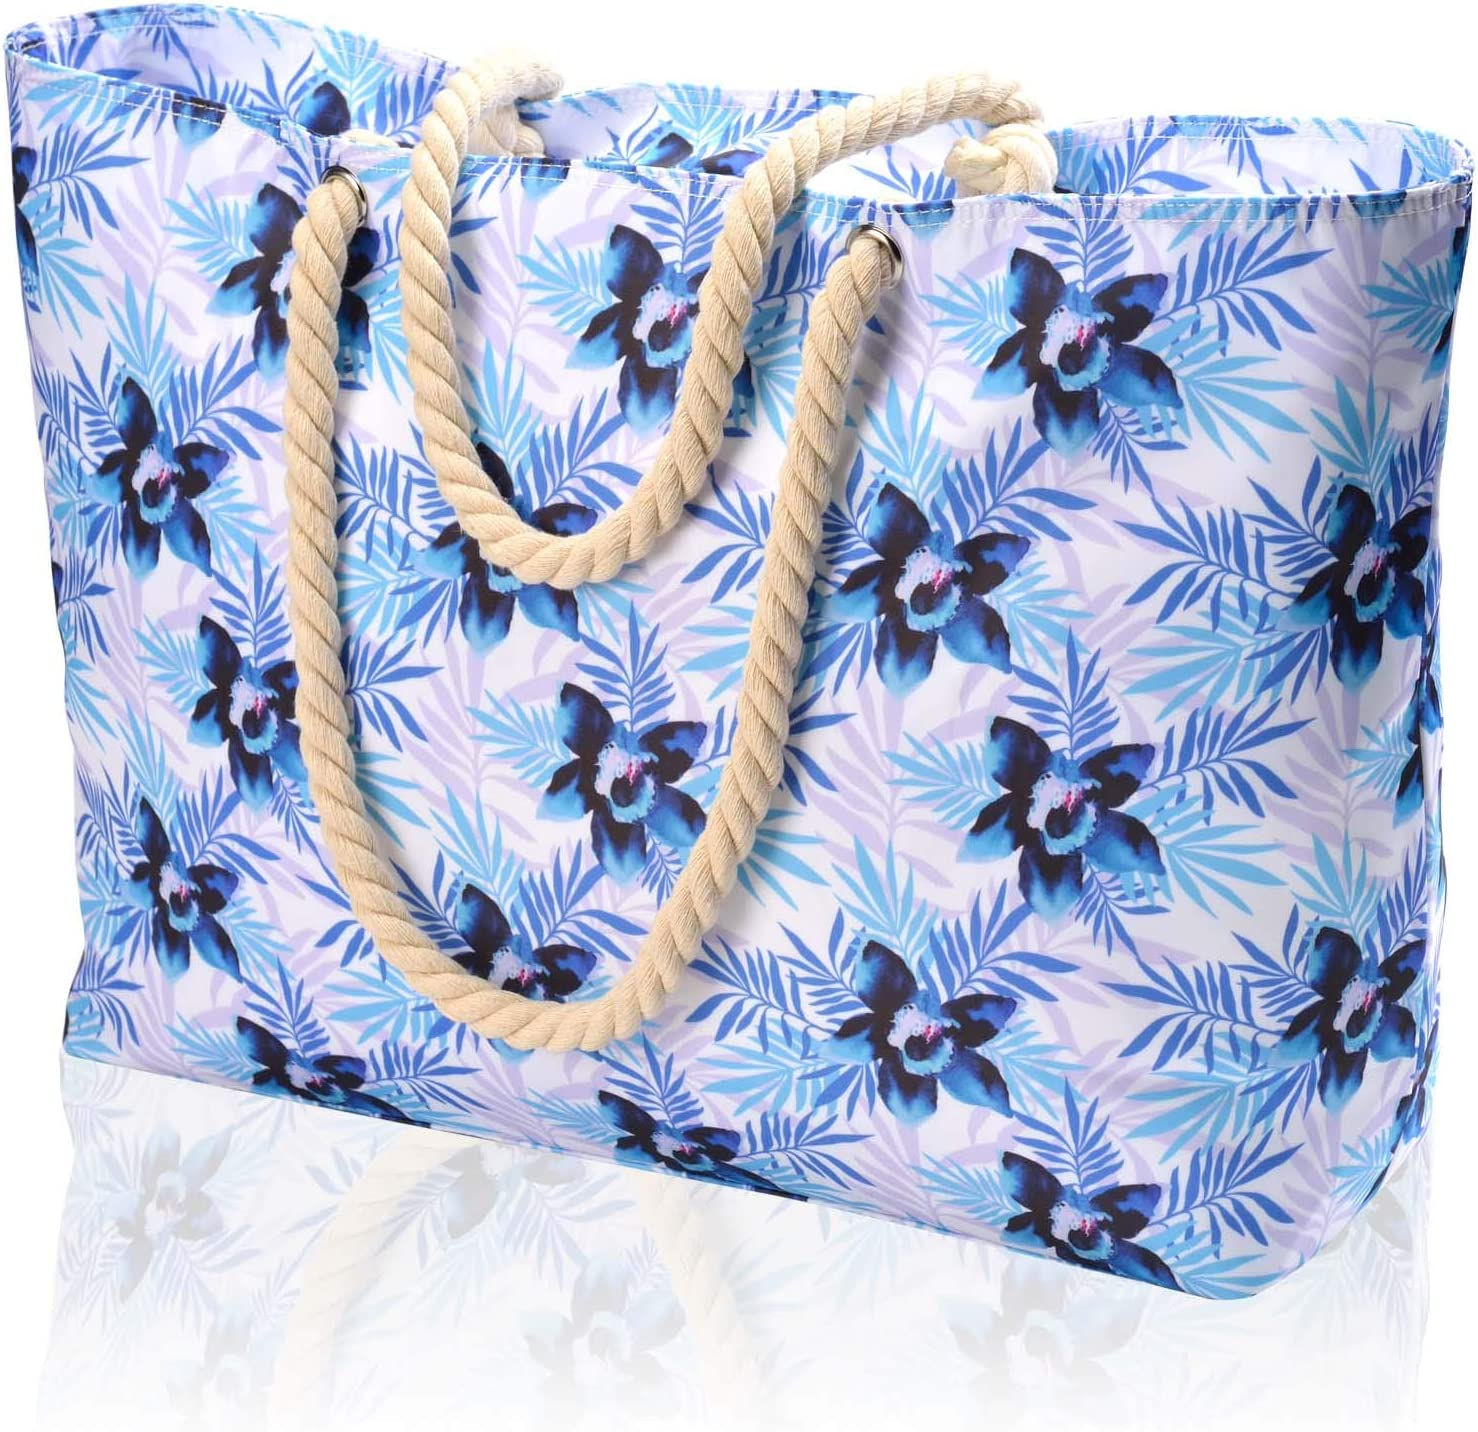 Large Beach San Francisco Mall Bag and Pool Waterproof Zipper Beauty products with 100%